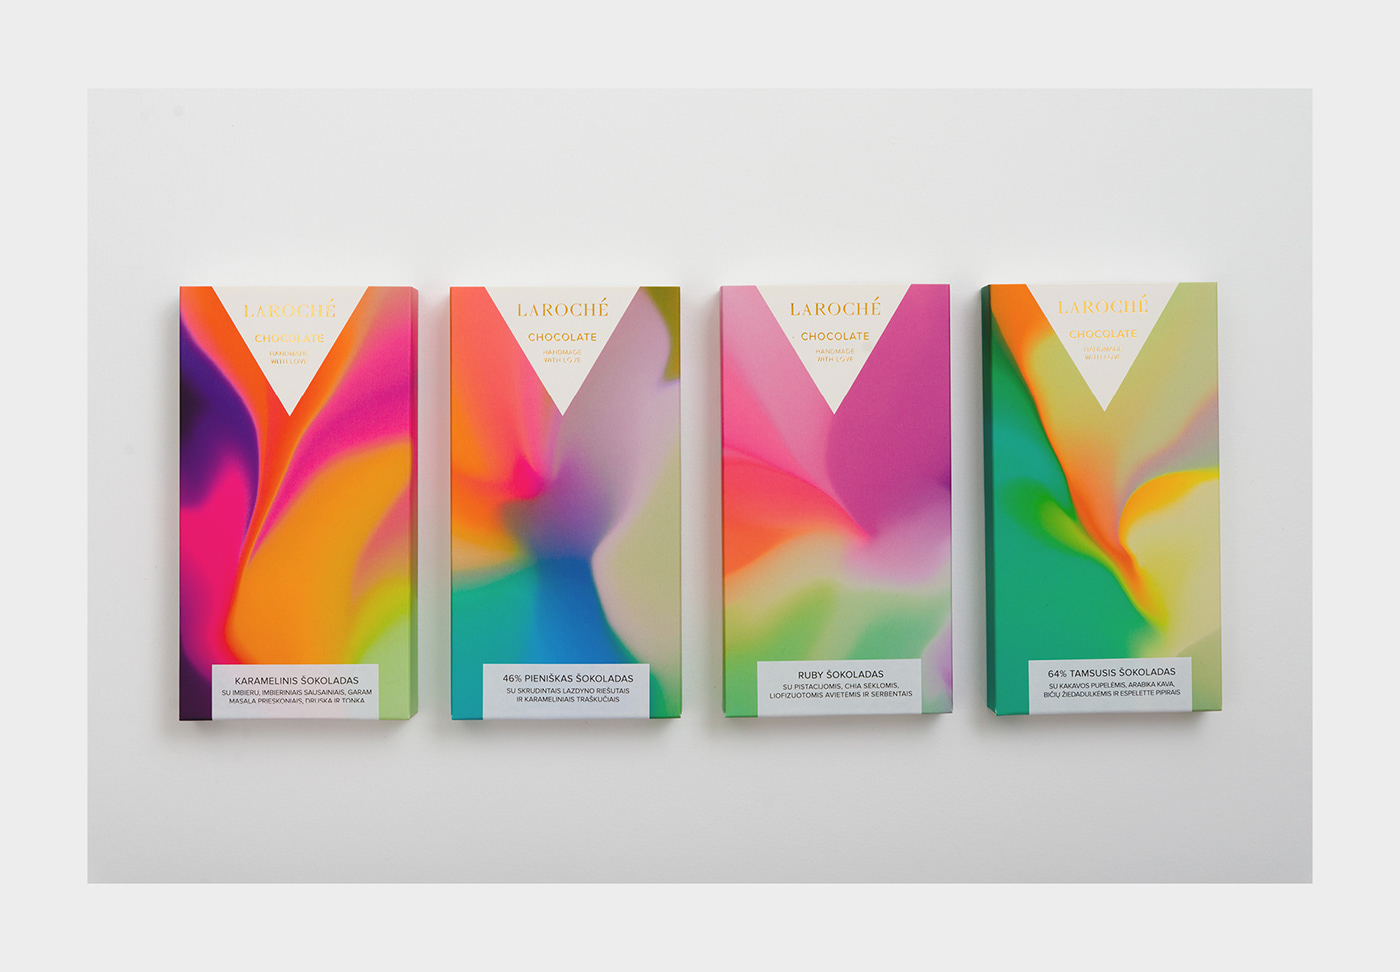 chocolate packaging design chocolate bar Candy sweet vibrant gradient colorful